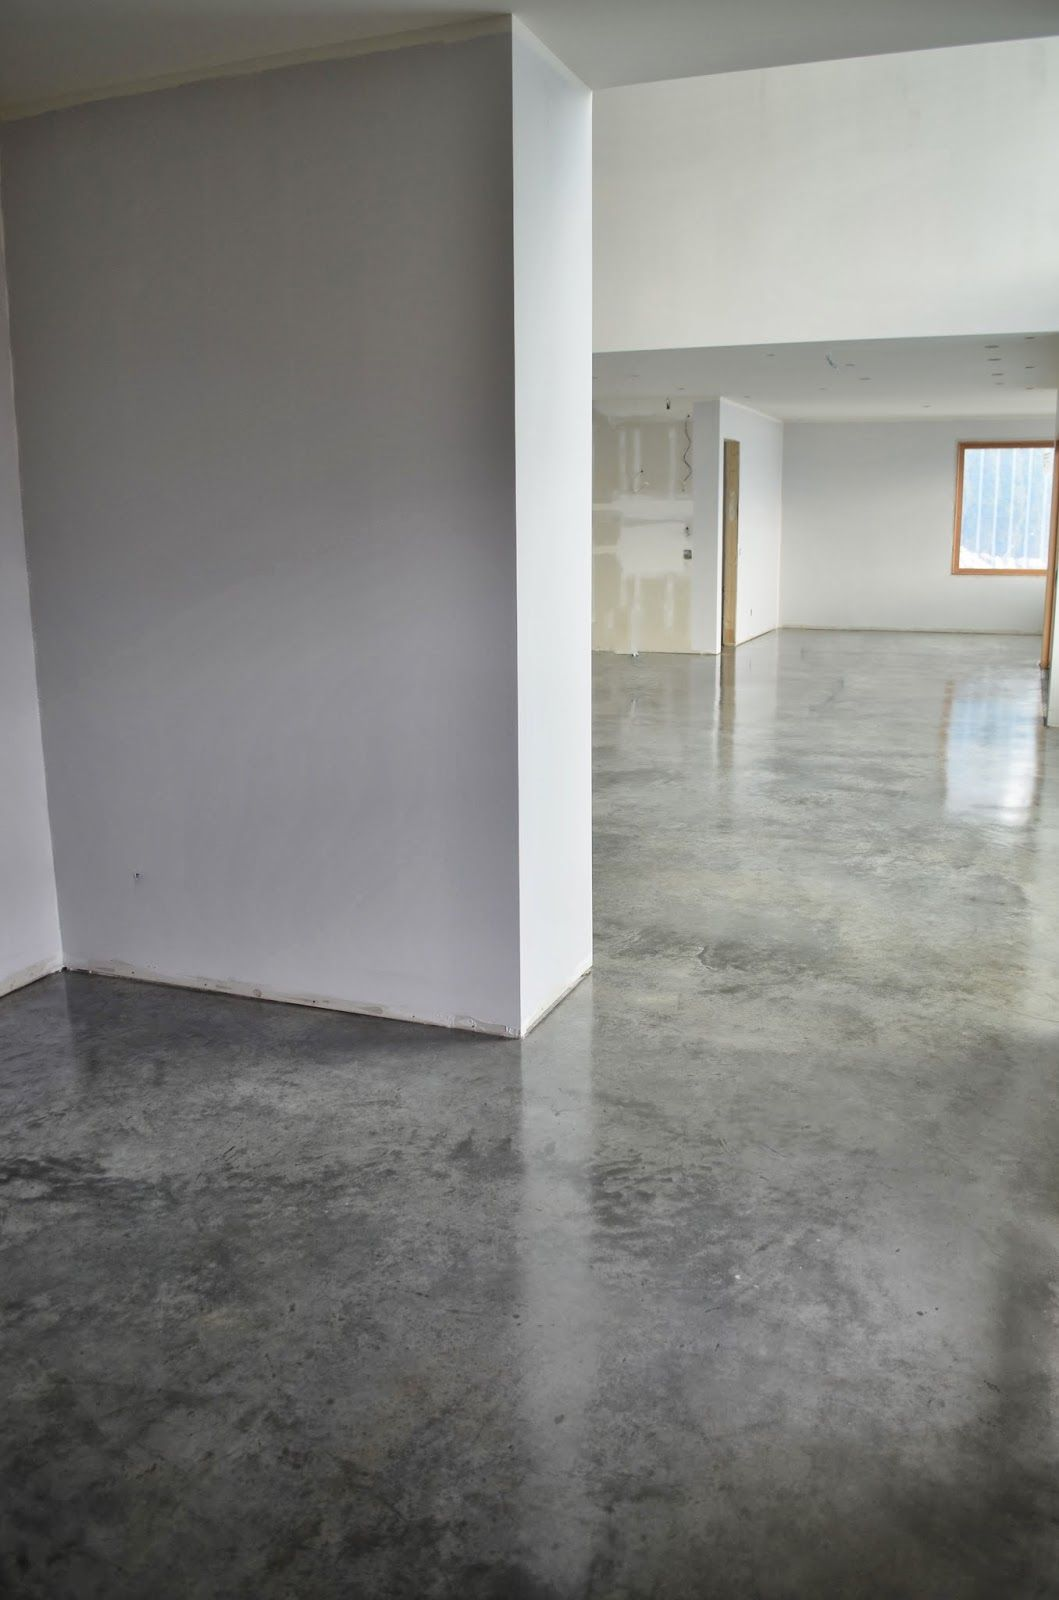 simple waxed concrete floors - option for floor finish with big area rugs  for warmth and color.